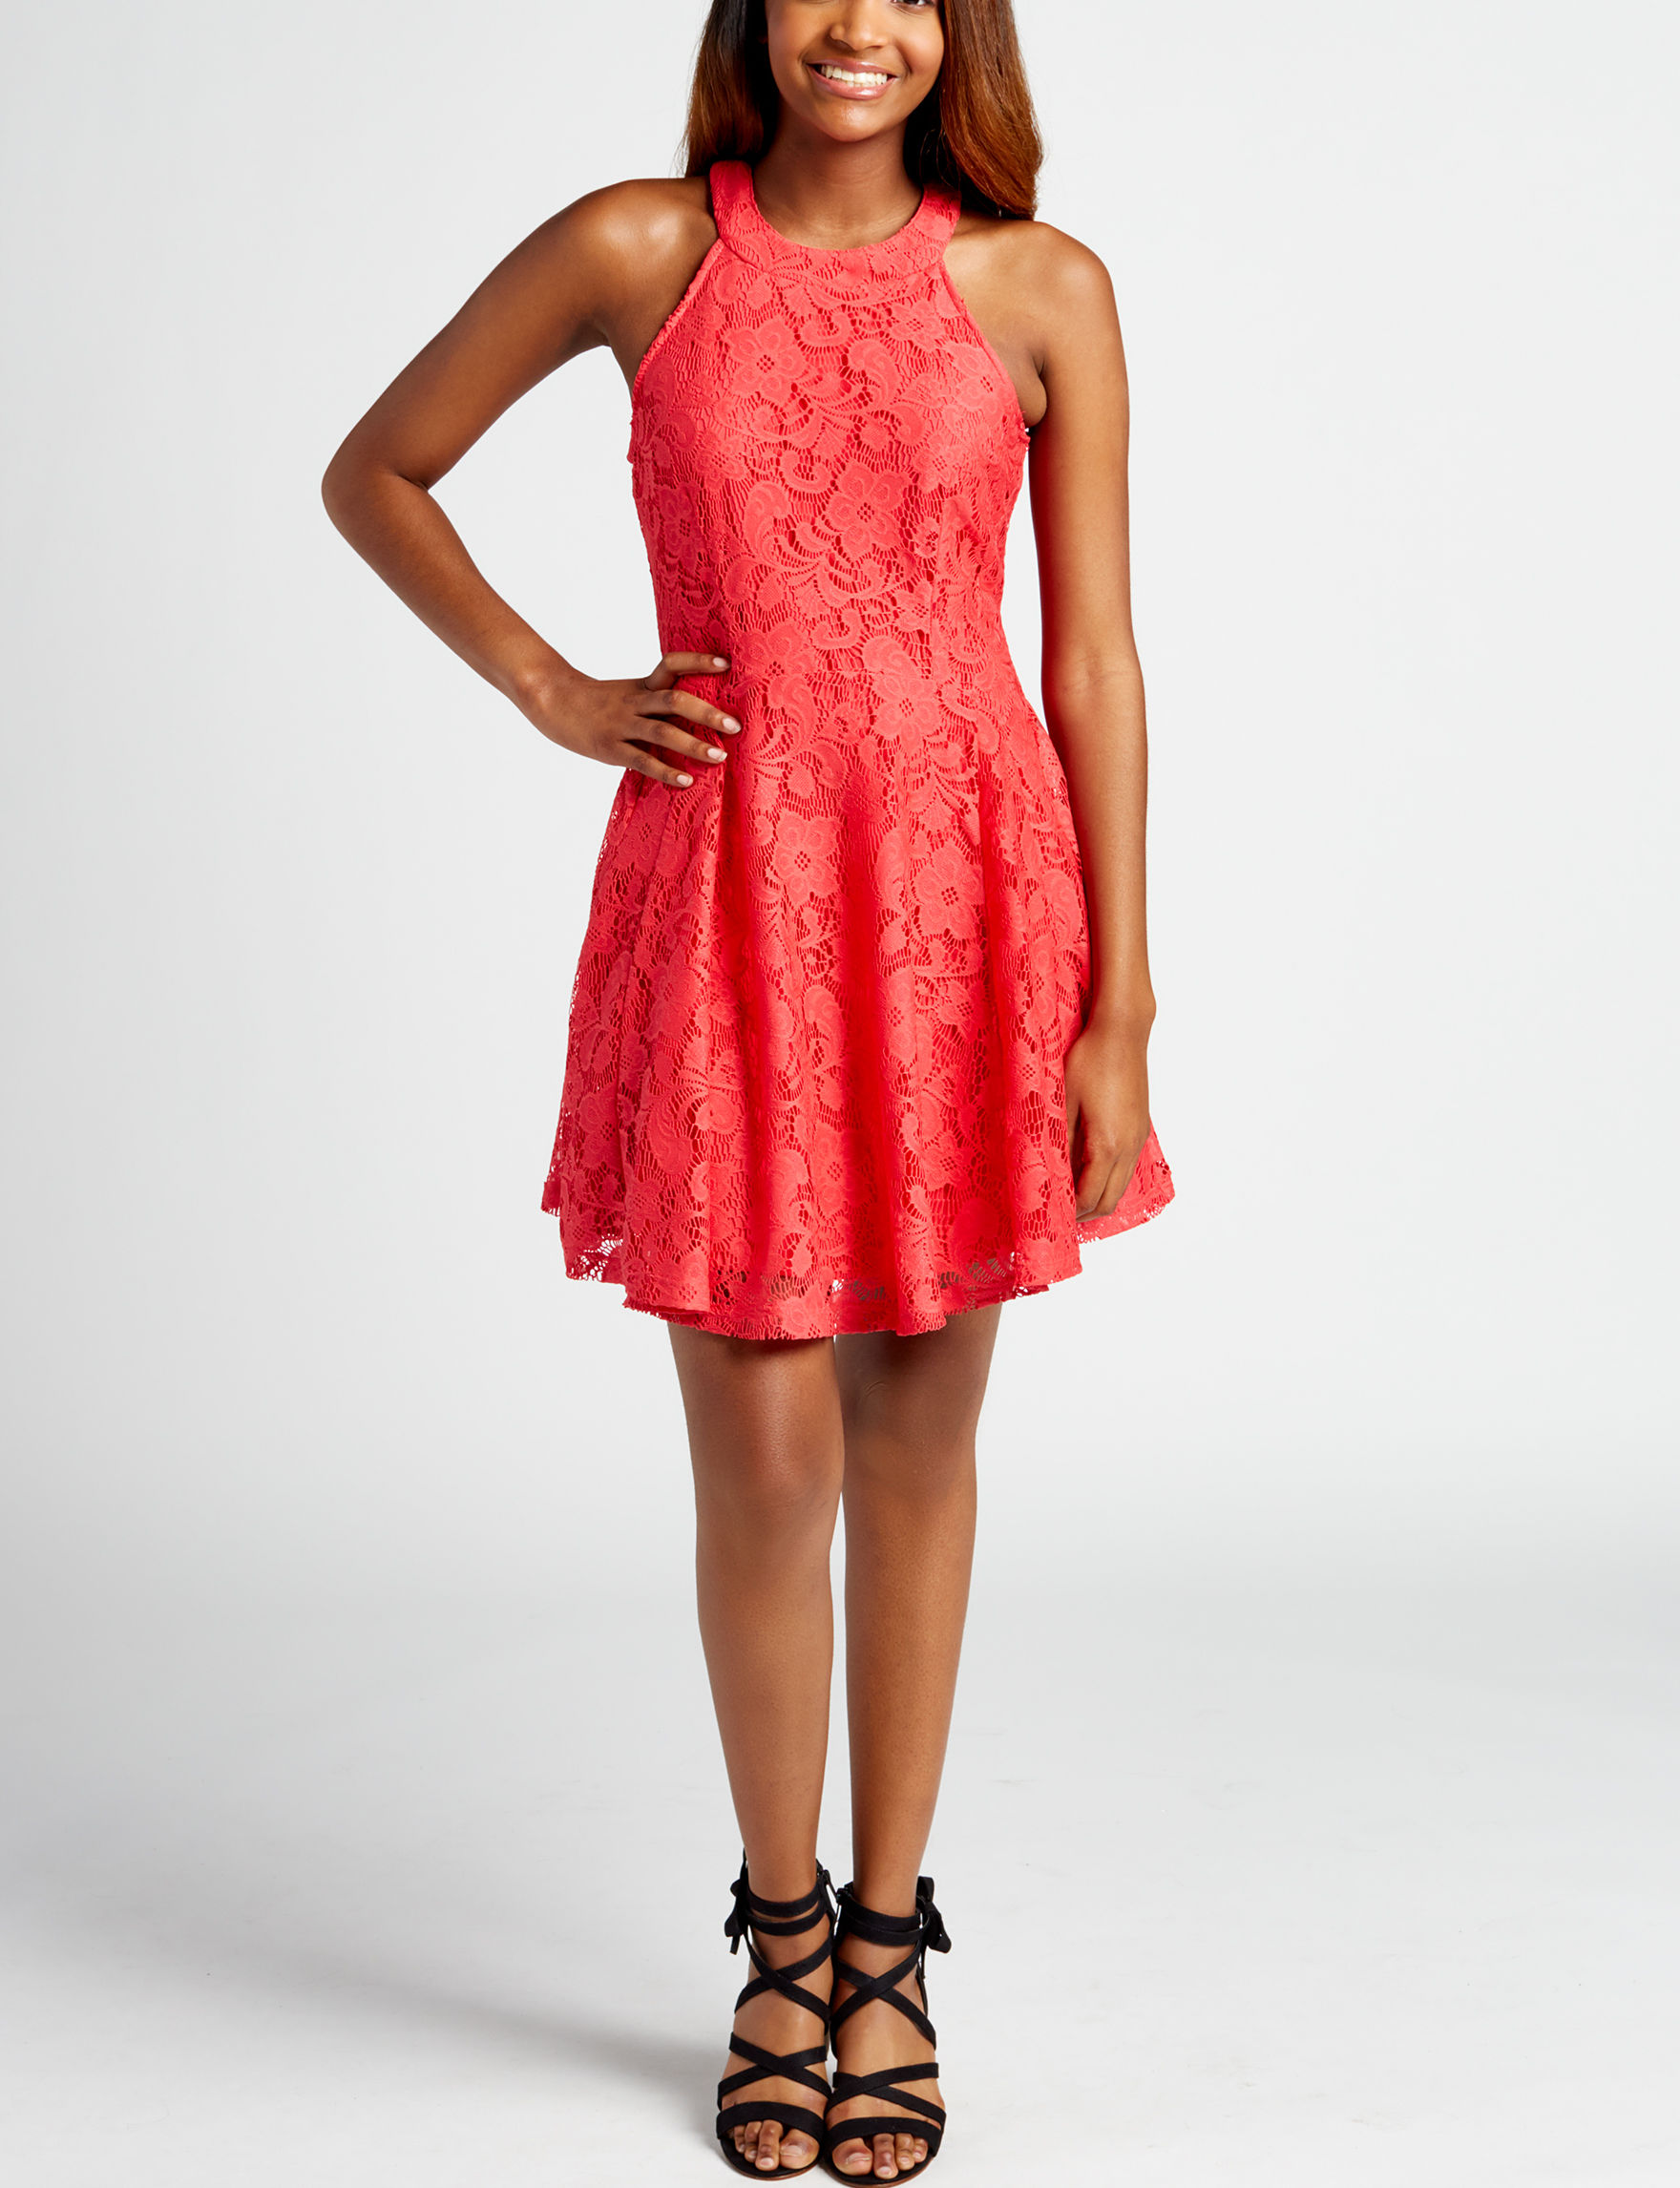 BeBop Red Everyday & Casual Fit & Flare Dresses